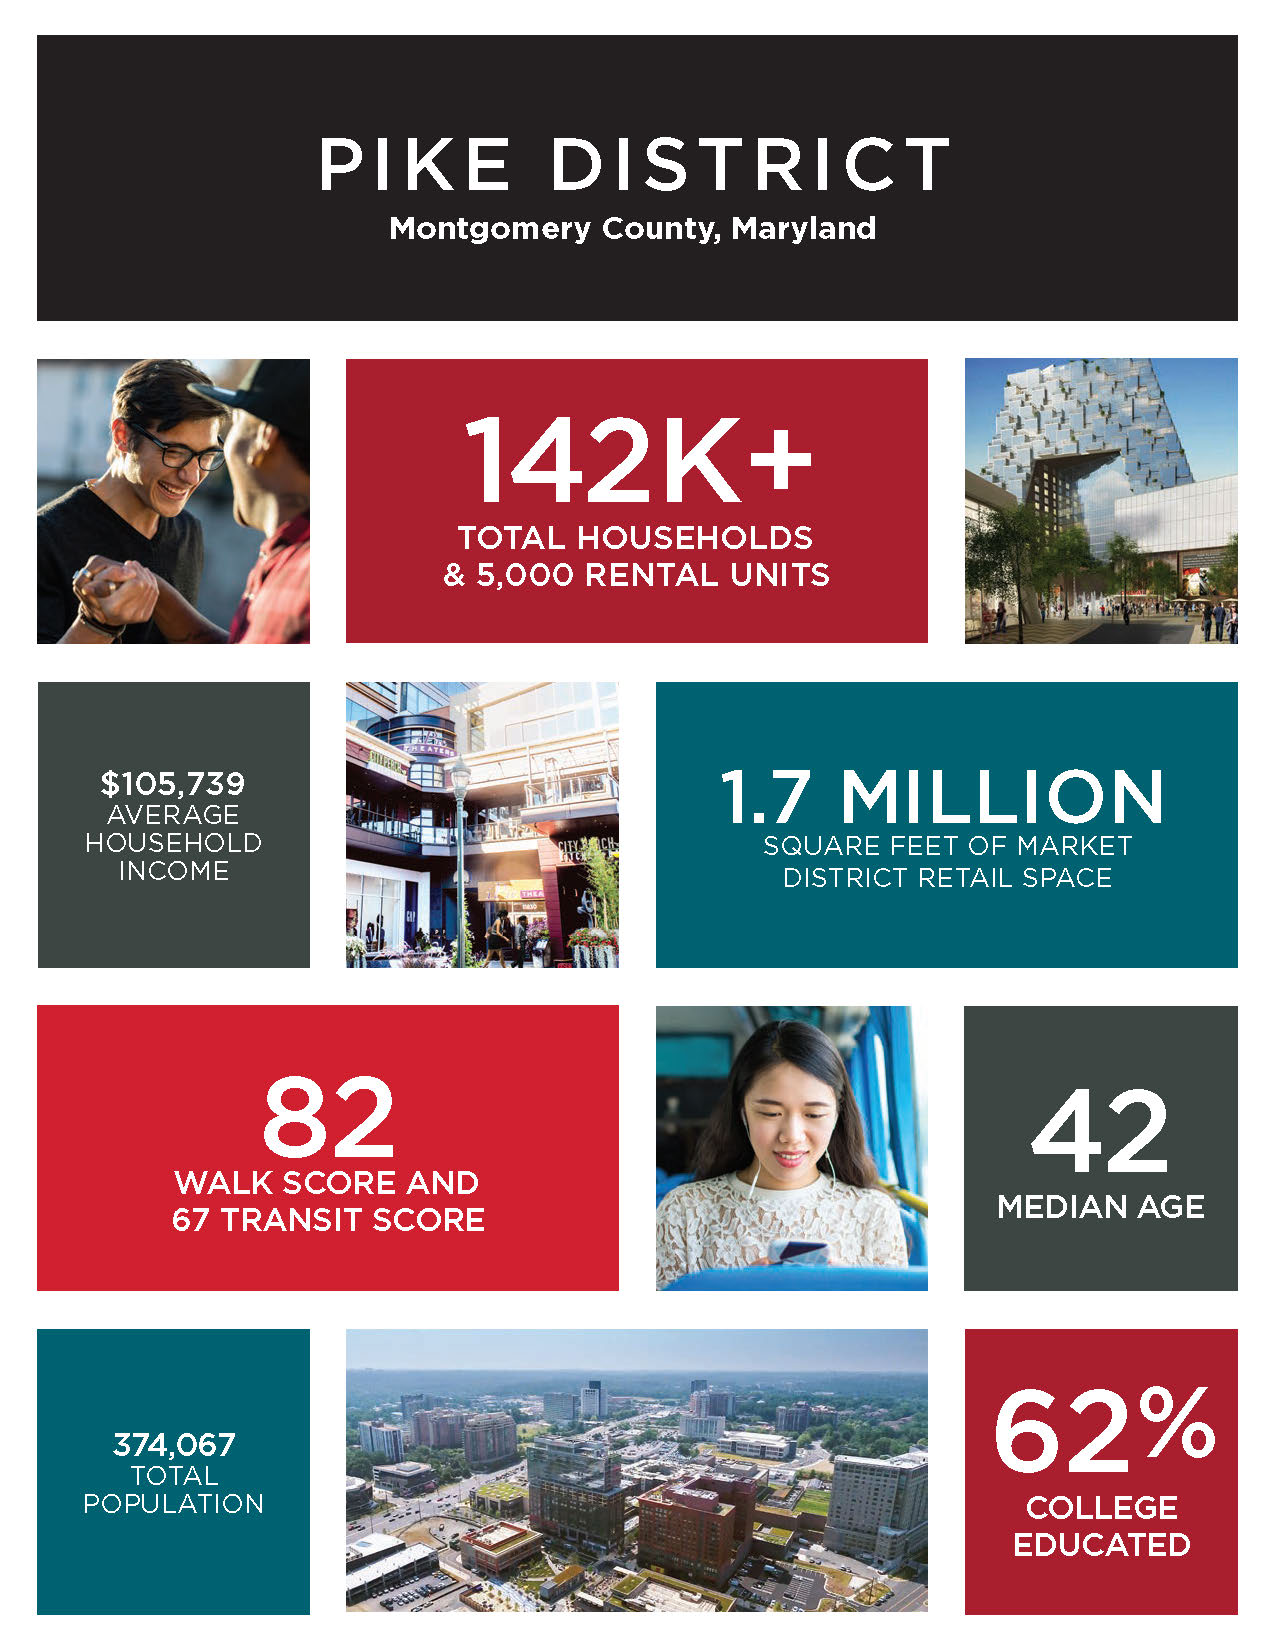 PikeDistrict_Infographic_032619-thumbnail_Page_1.jpg